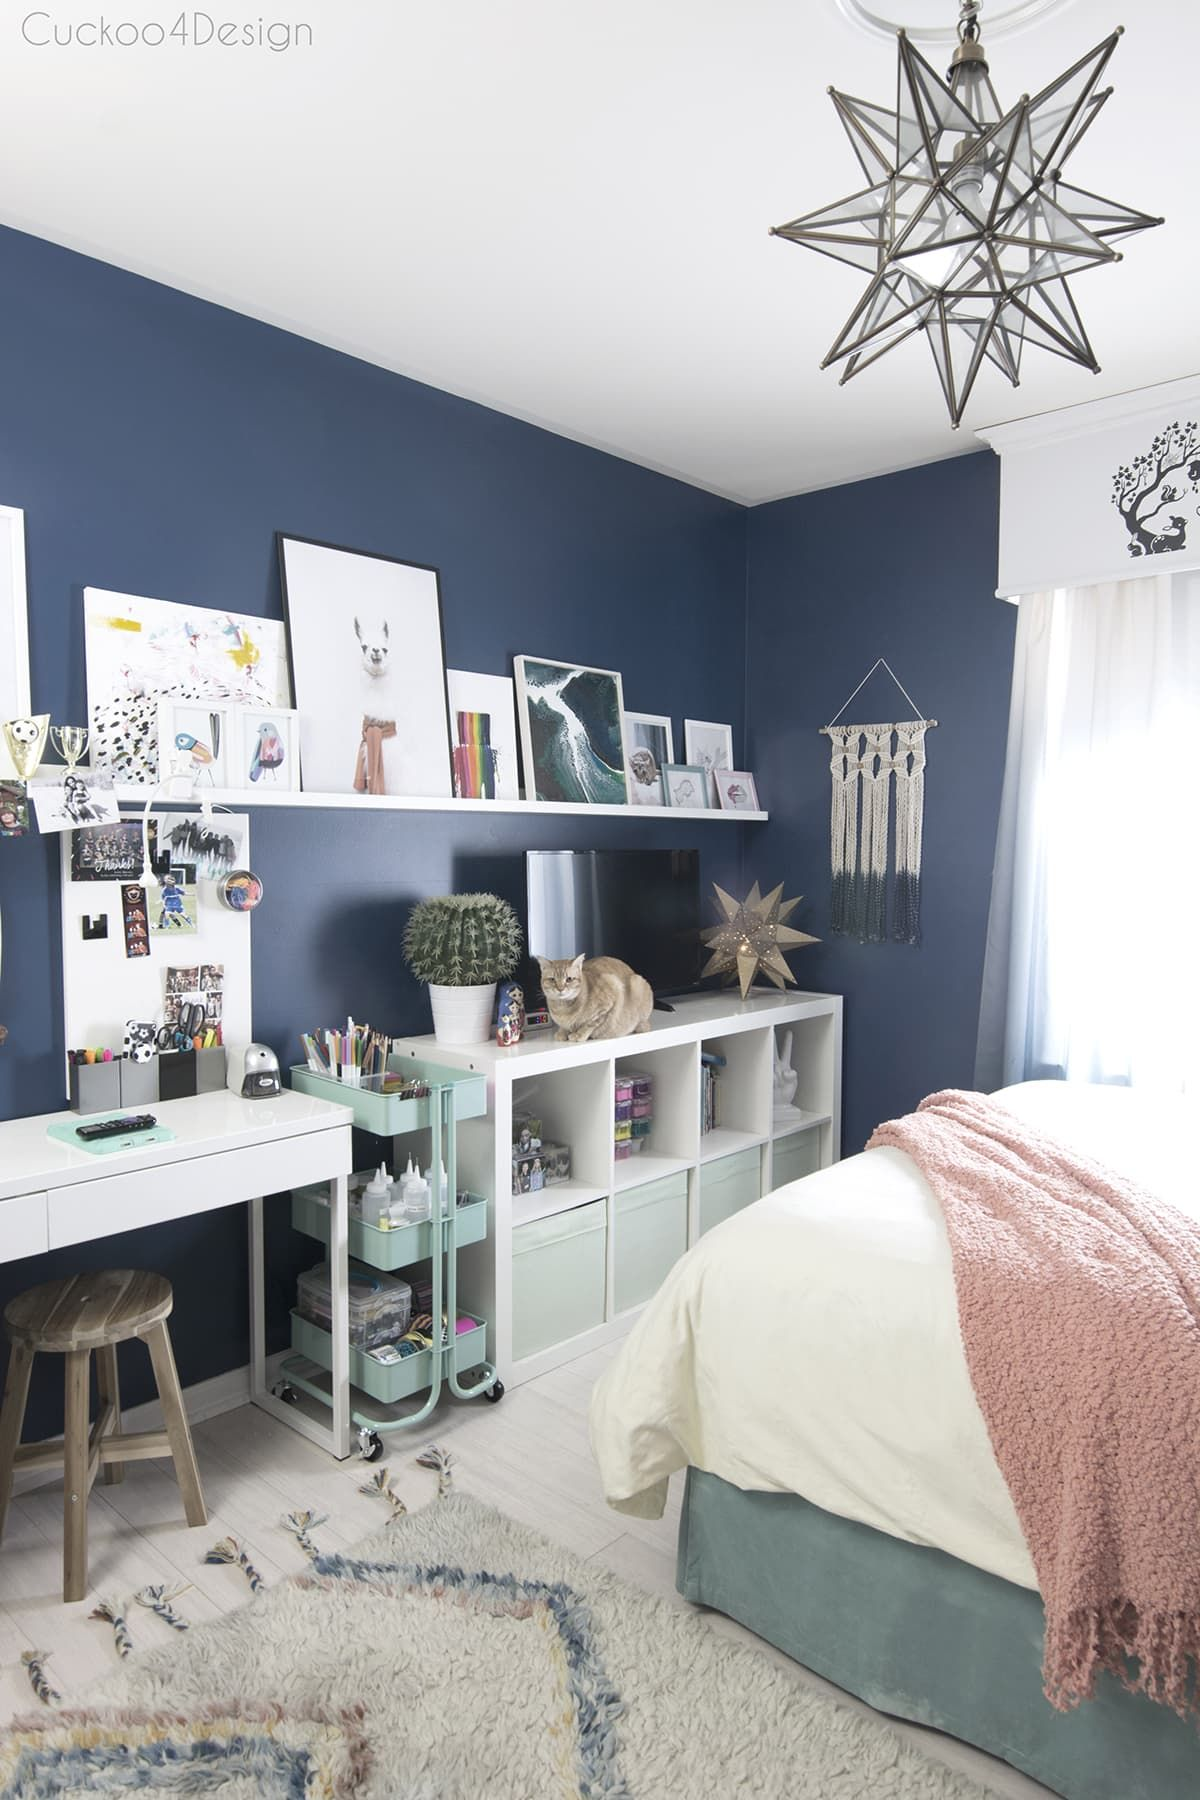 Cheap Ways To Decorate A Teenage Girl S Bedroom Cuckoo4design Girl Bedroom Decor Blue Girls Rooms Stylish Bedroom